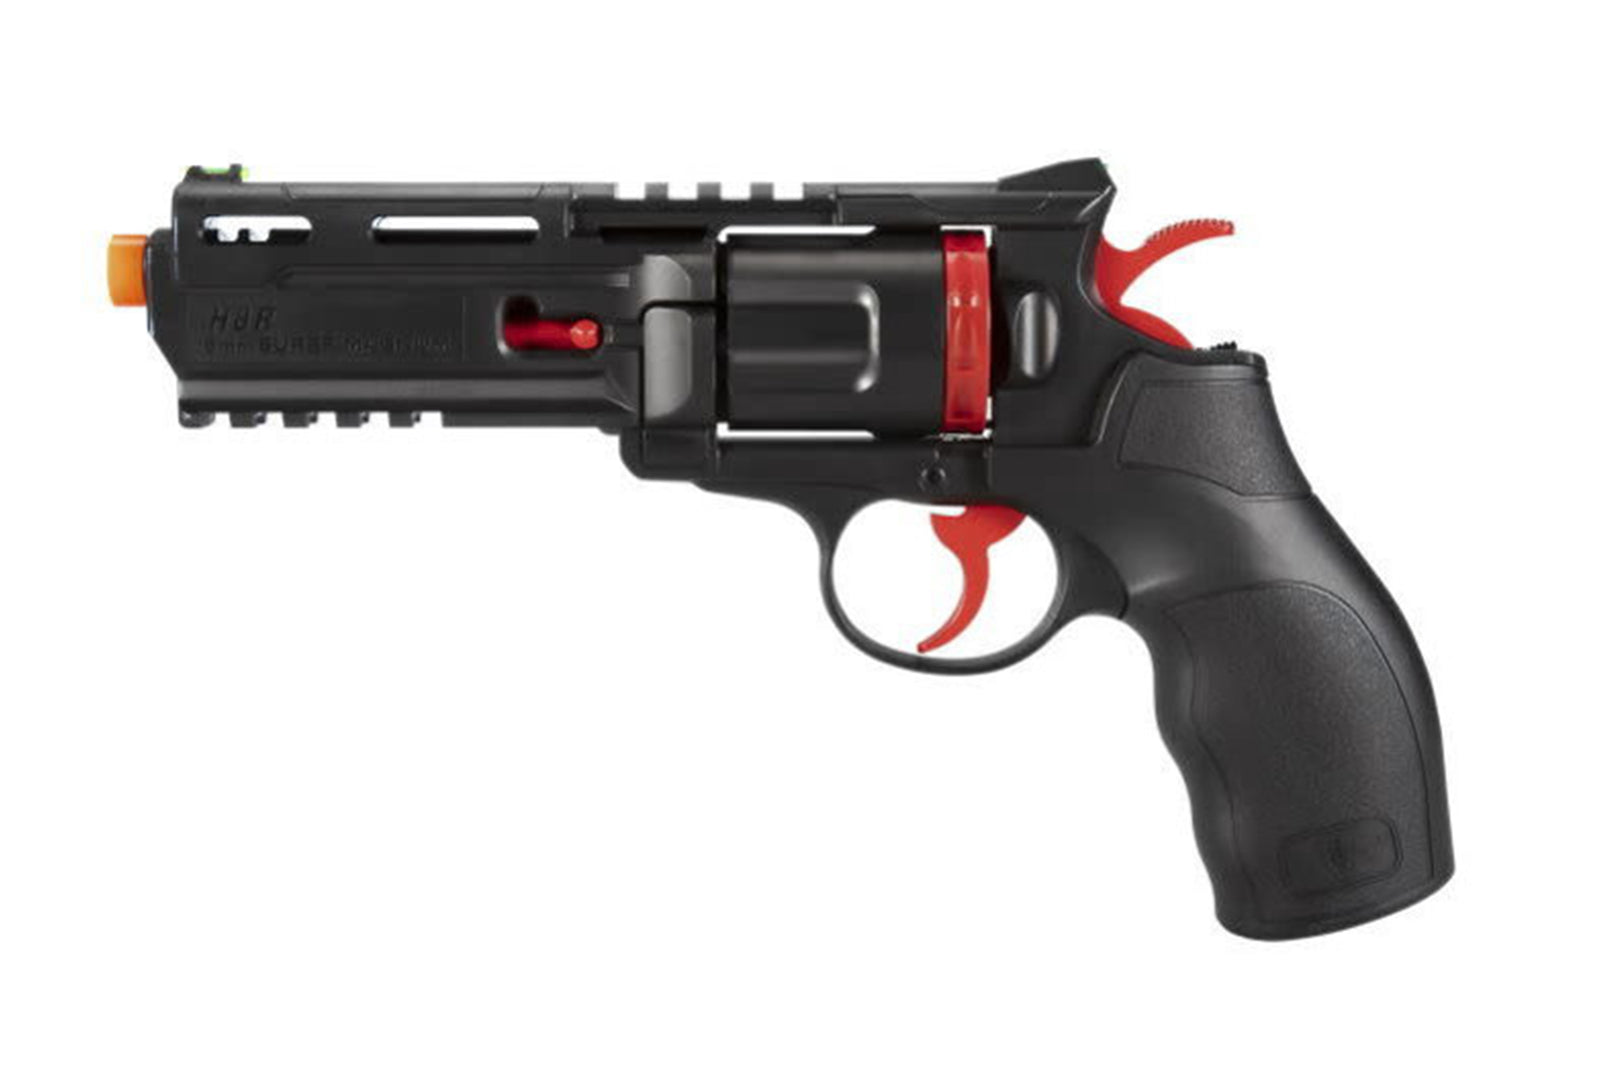 Elite Force H8R Limited Edition Red/Black Gen2 CO2 Revolver